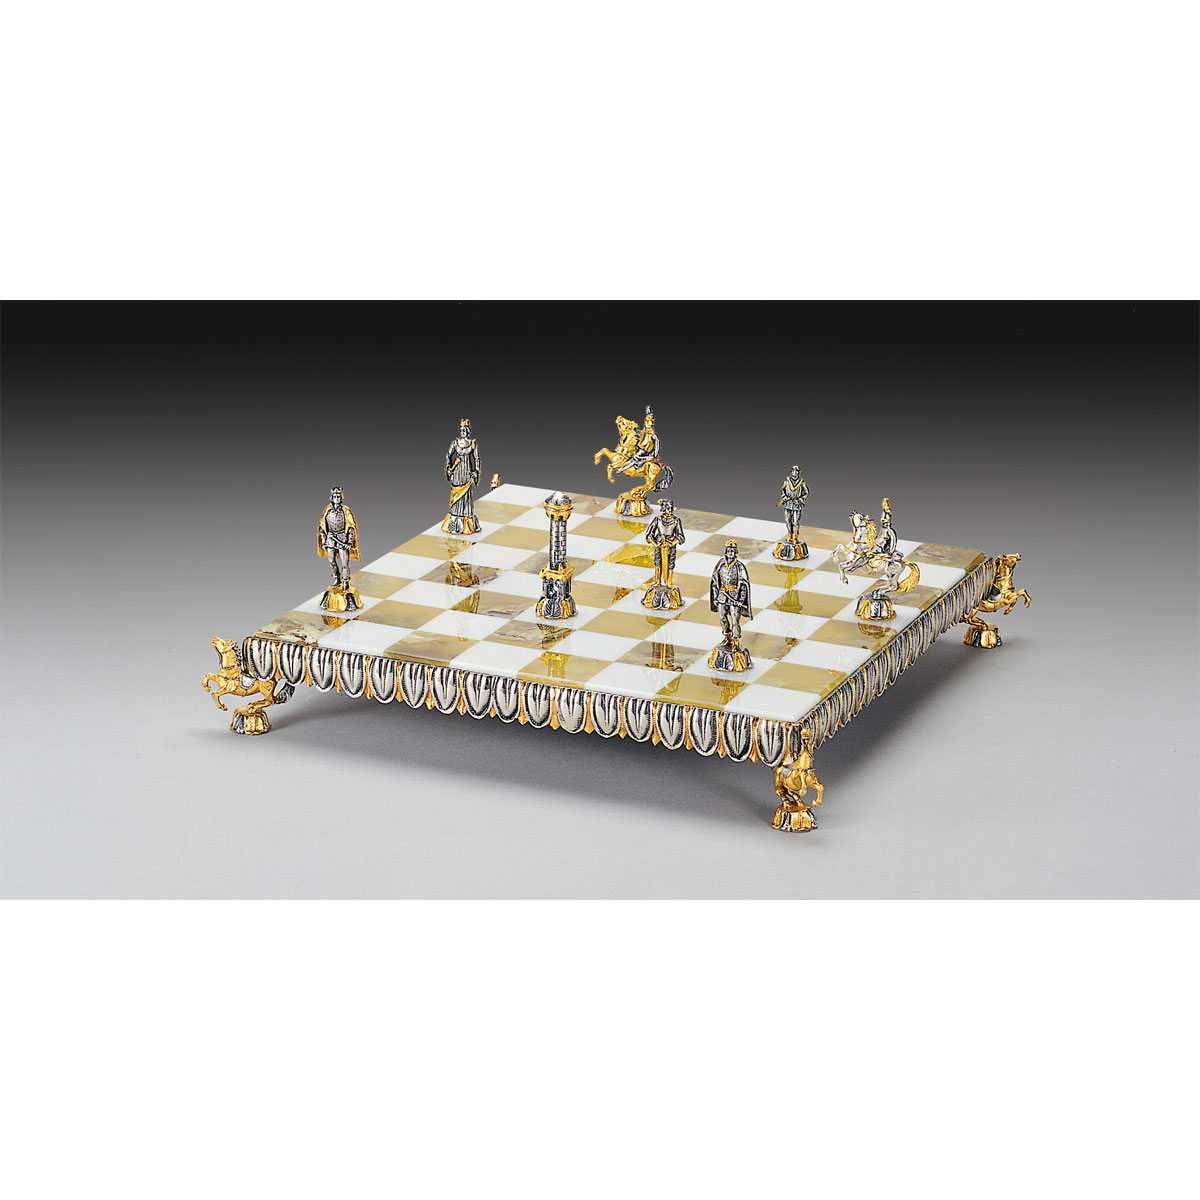 Florentine Renaissance Gold and Silver Themed Chess Set